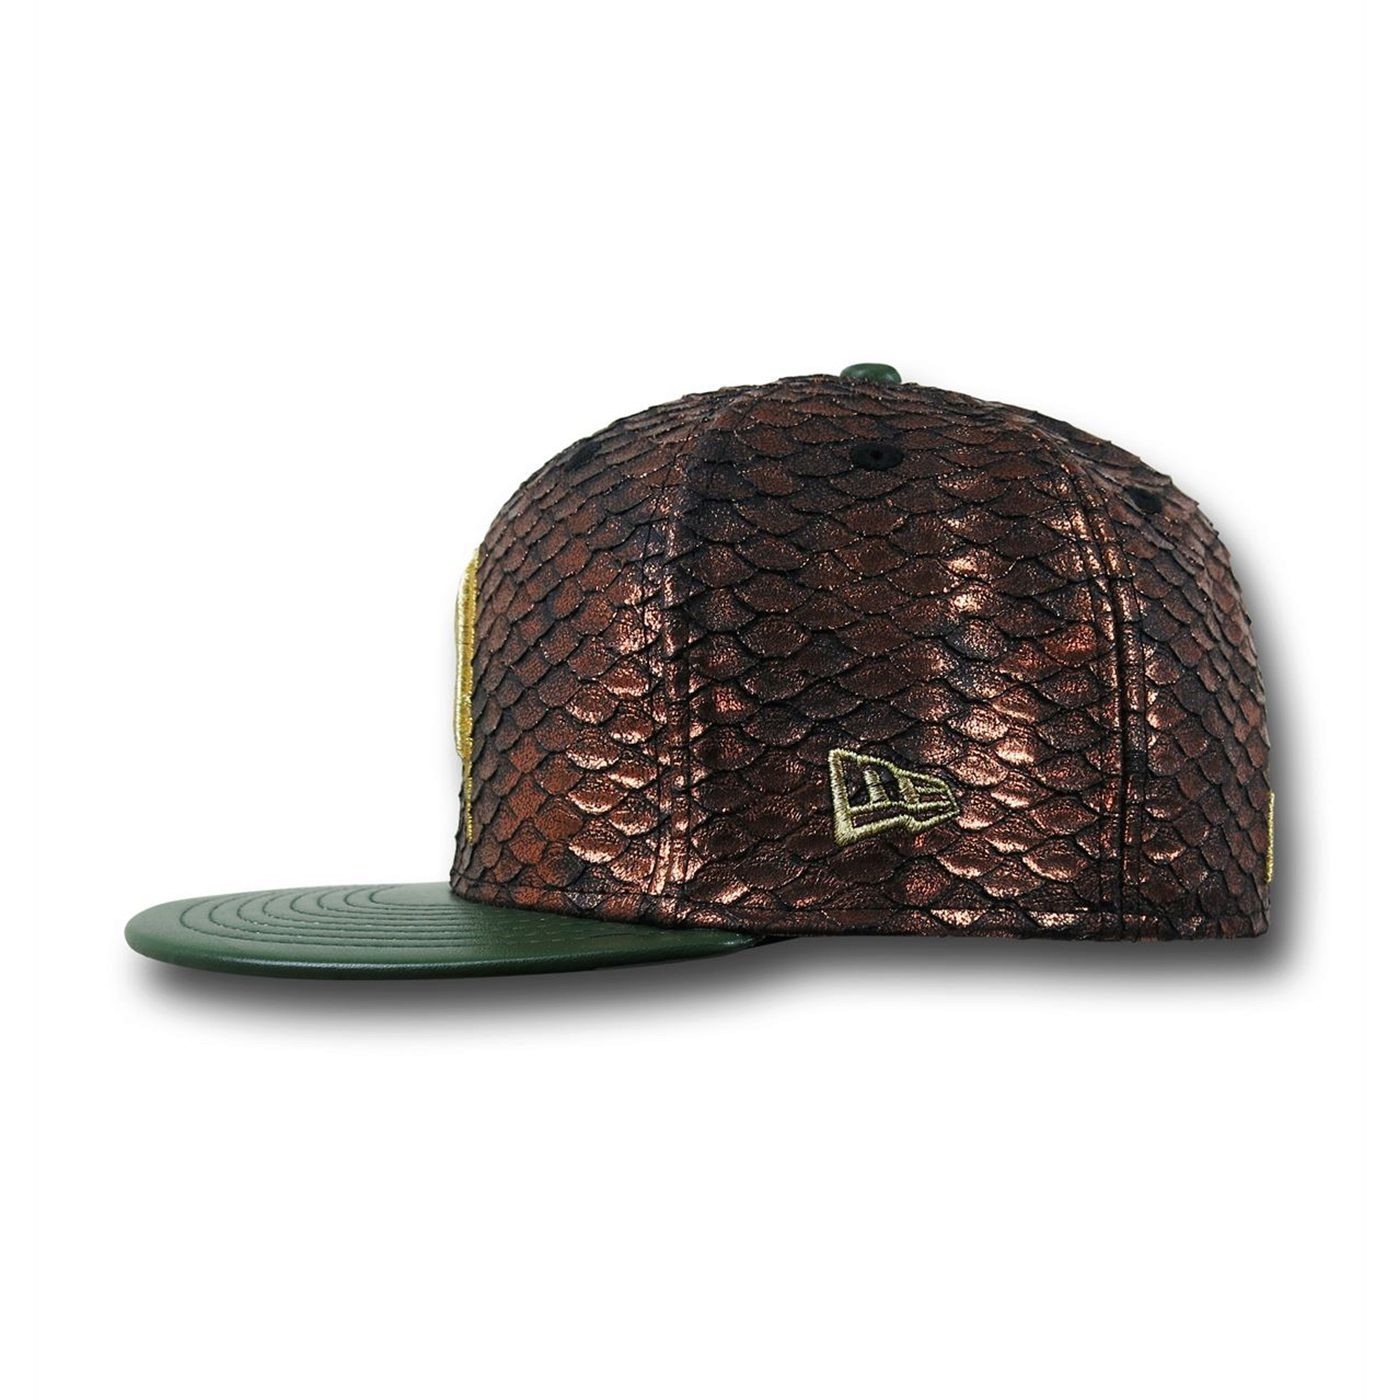 Batman Vs Superman- Aquaman Symbol New Era 59Fifty Hat